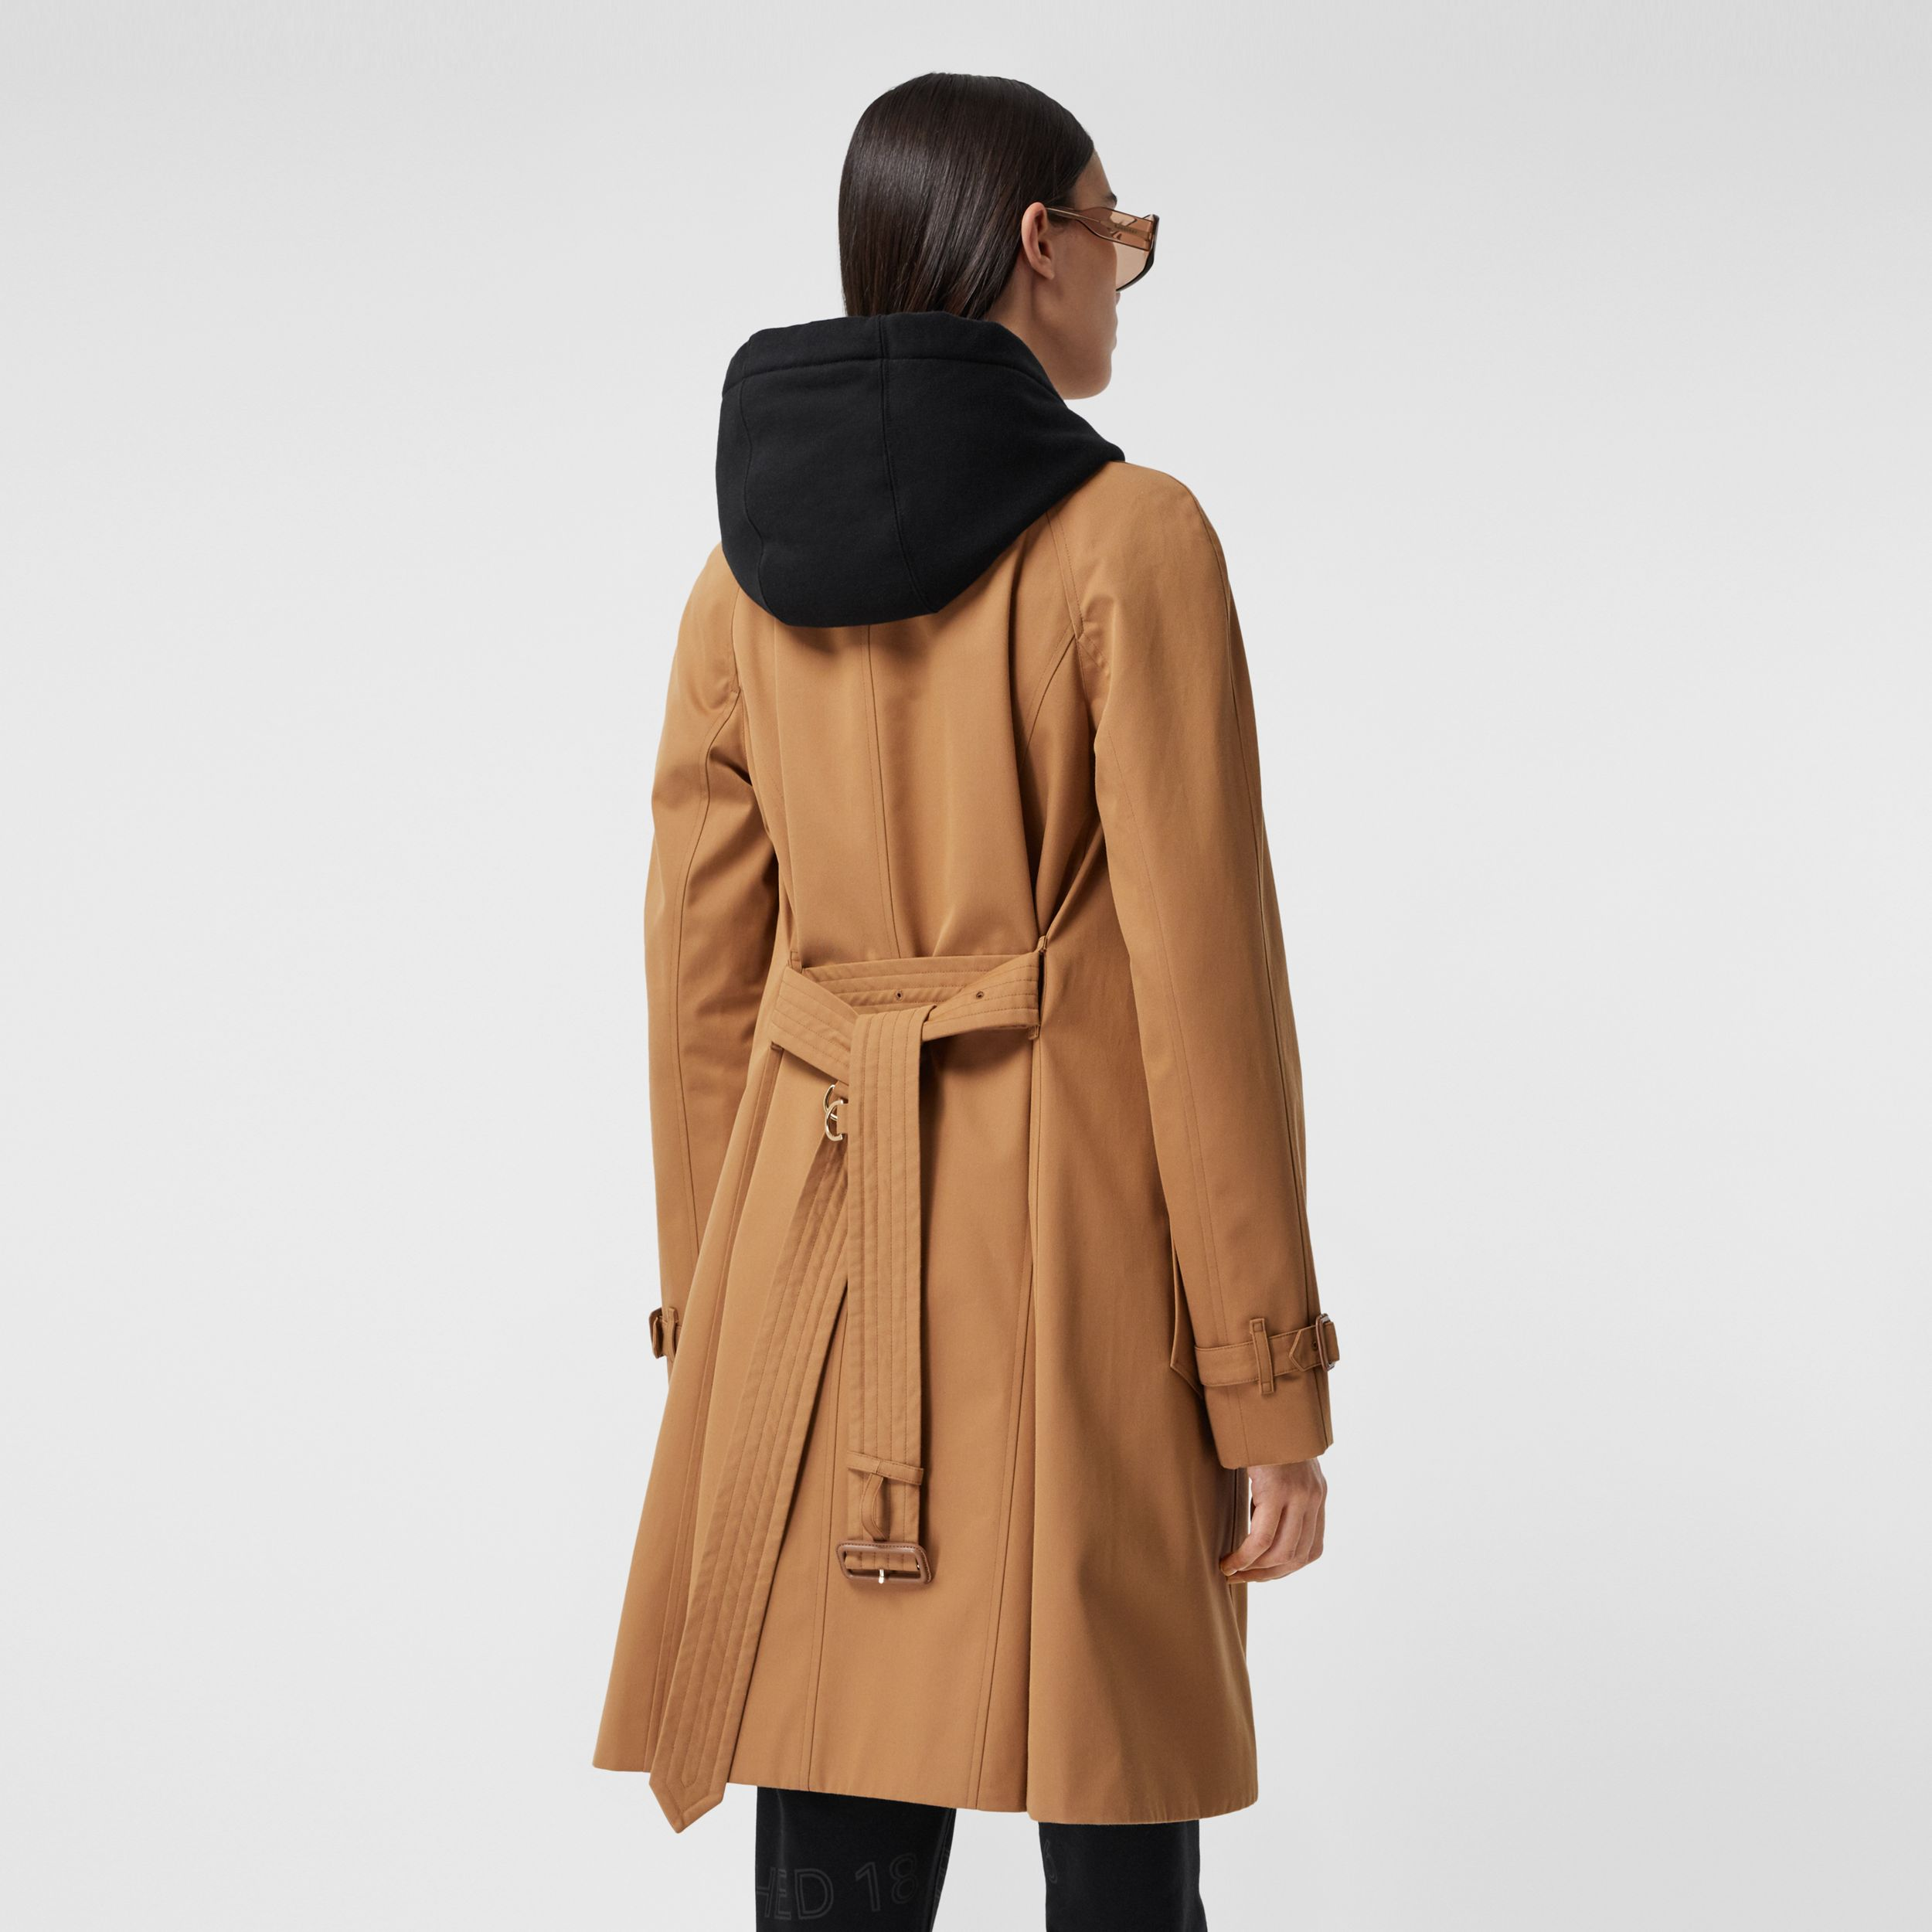 Cotton Gabardine Belted Swing Coat in Nutmeg - Women | Burberry United States - 3